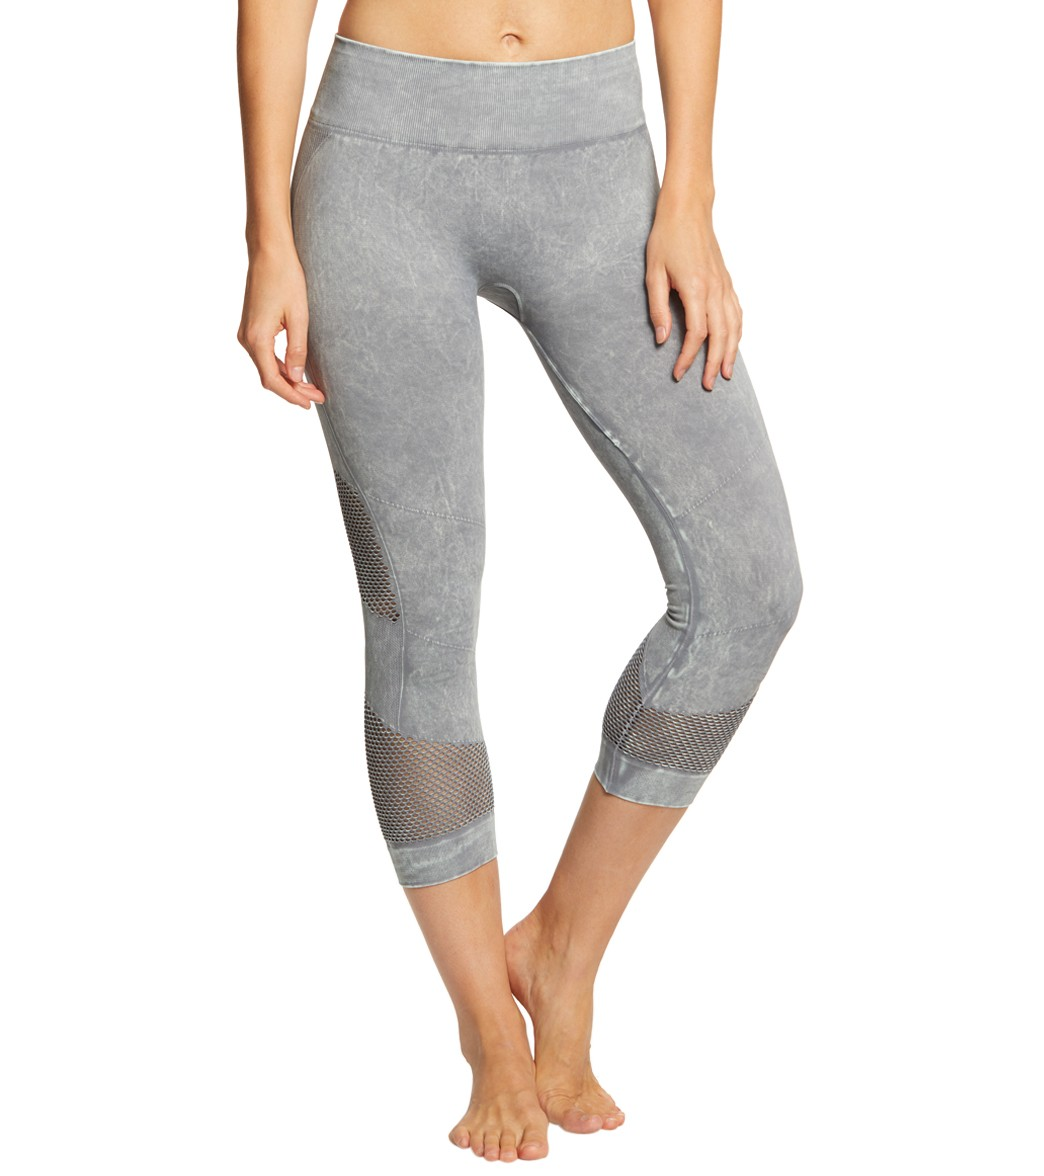 5c358cadca12a NUX Network Mineral Wash Seamless Yoga Capris at YogaOutlet.com - Free  Shipping